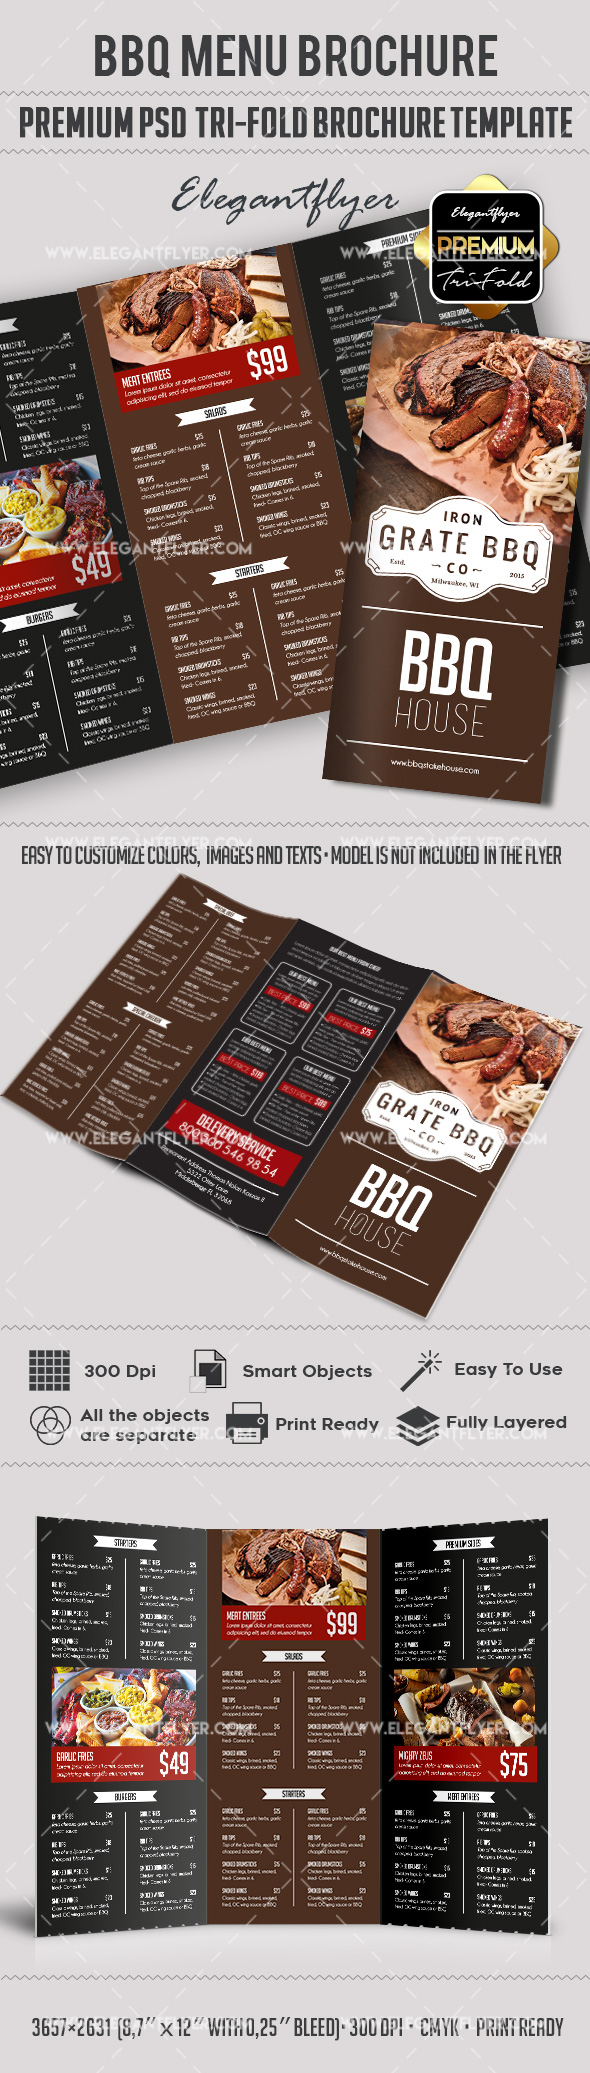 Brochure for BBQ Menu Template